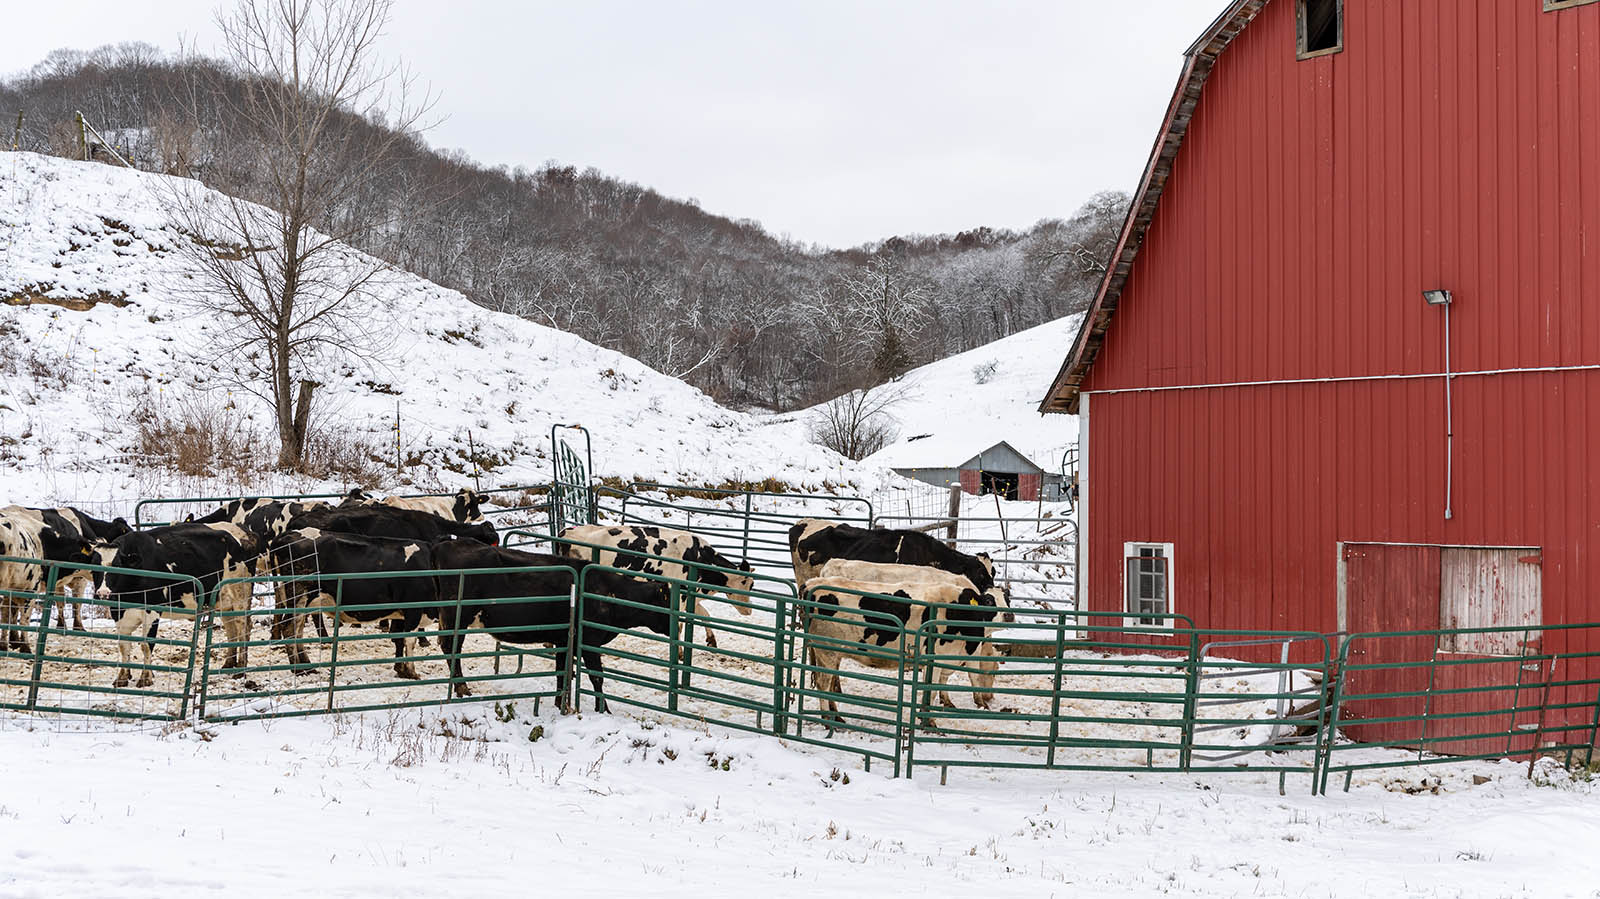 Cows get some fresh air in the winter paddock outside a red barn.